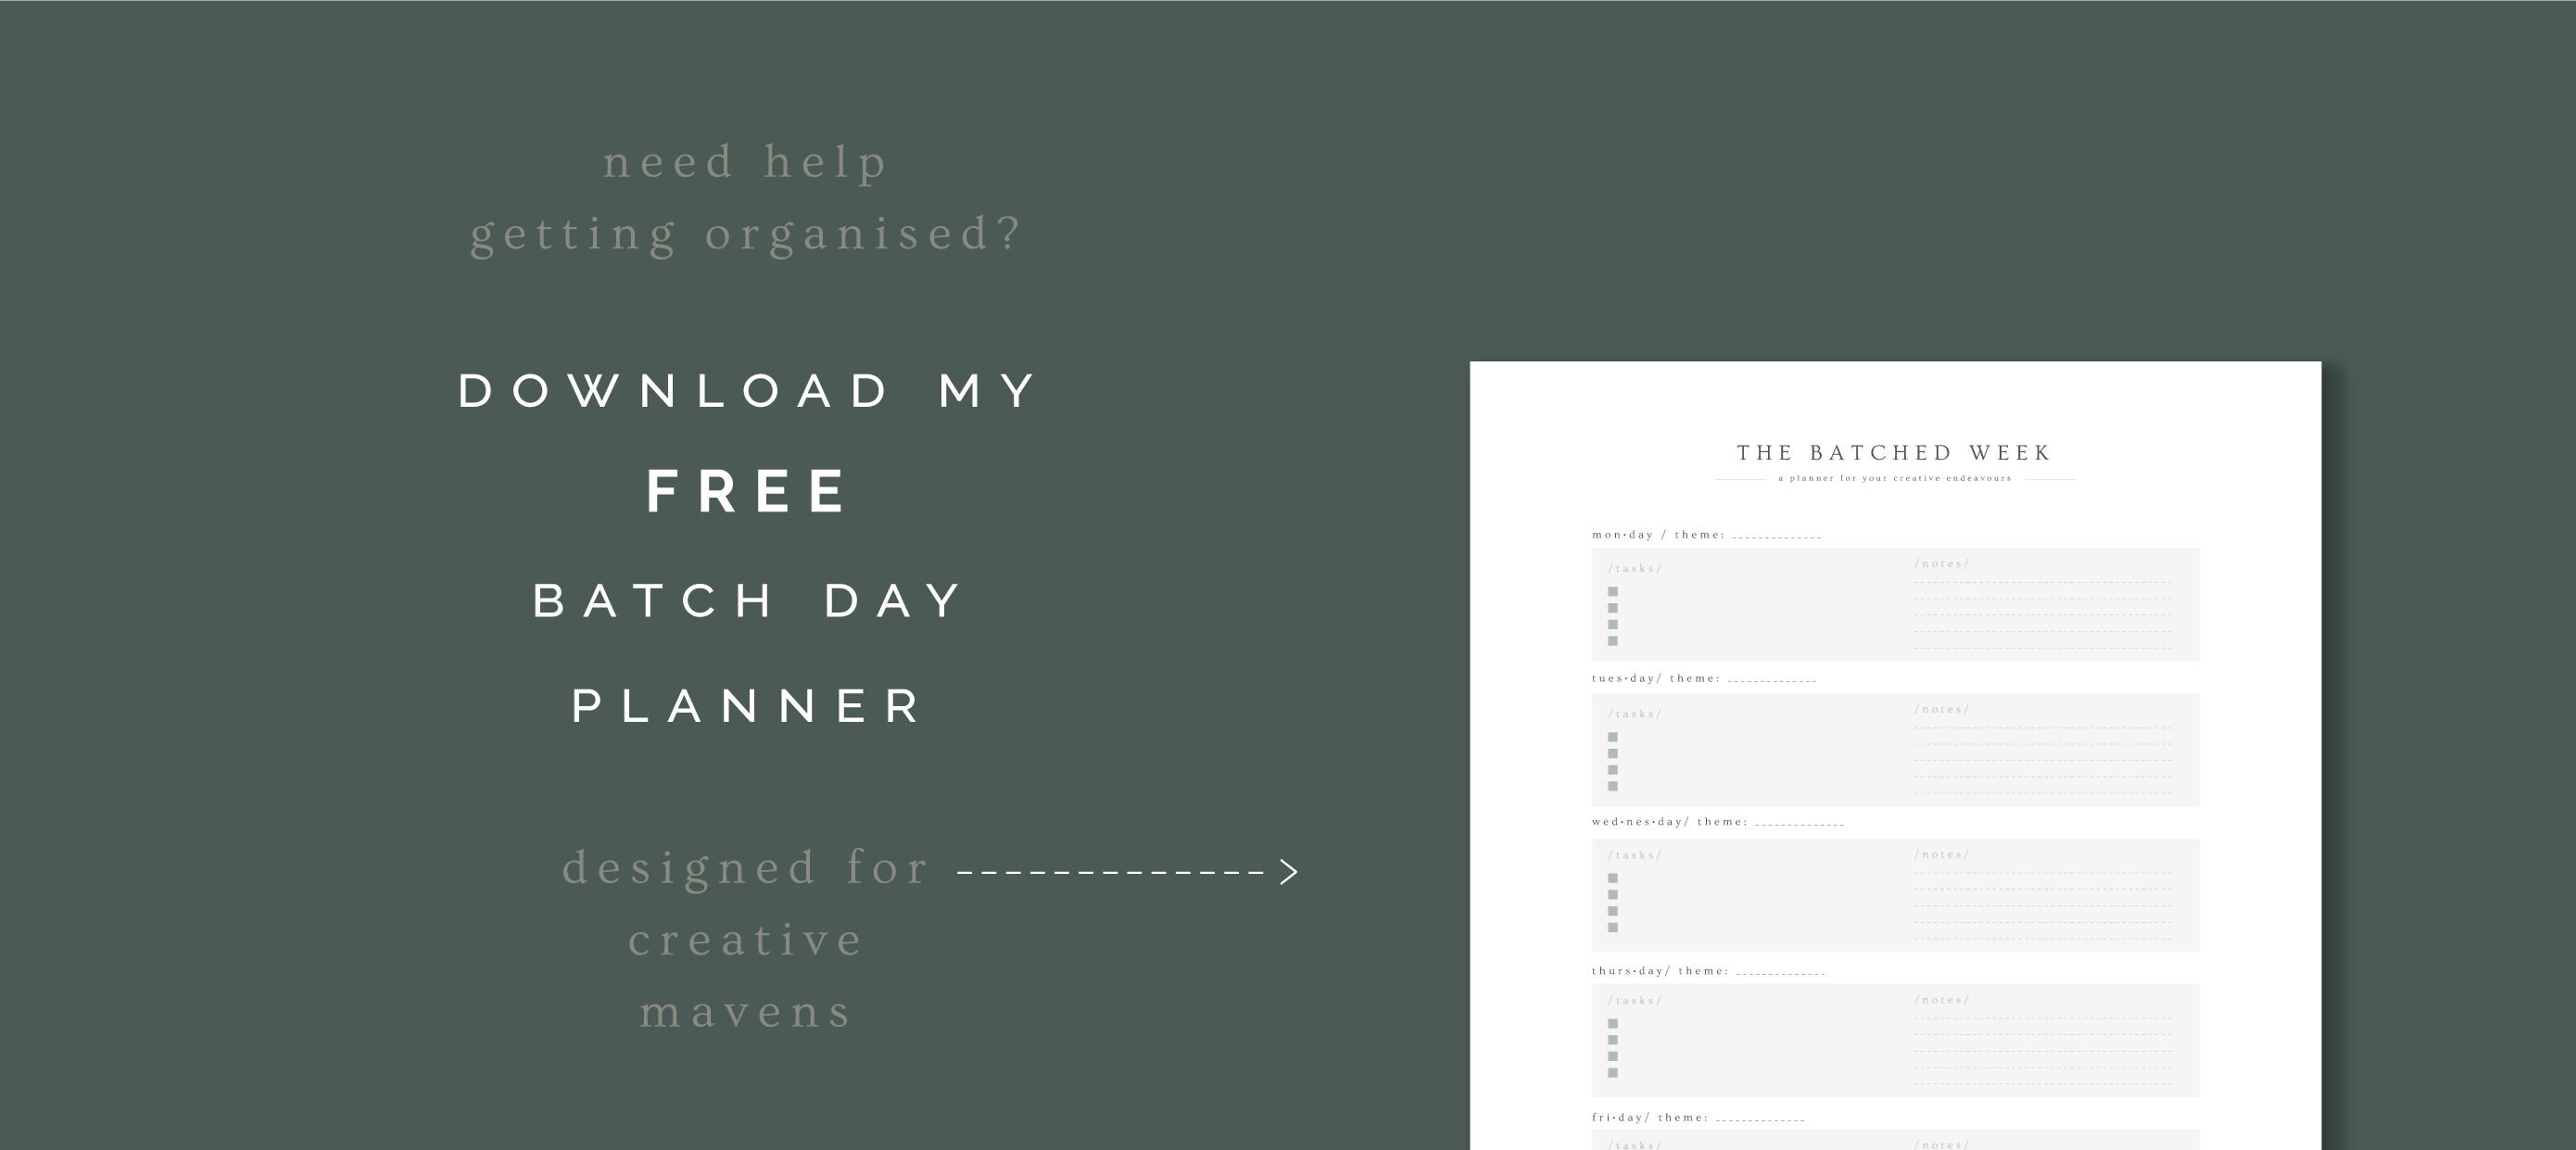 freebie free weekly creative maven batch day business planner banner